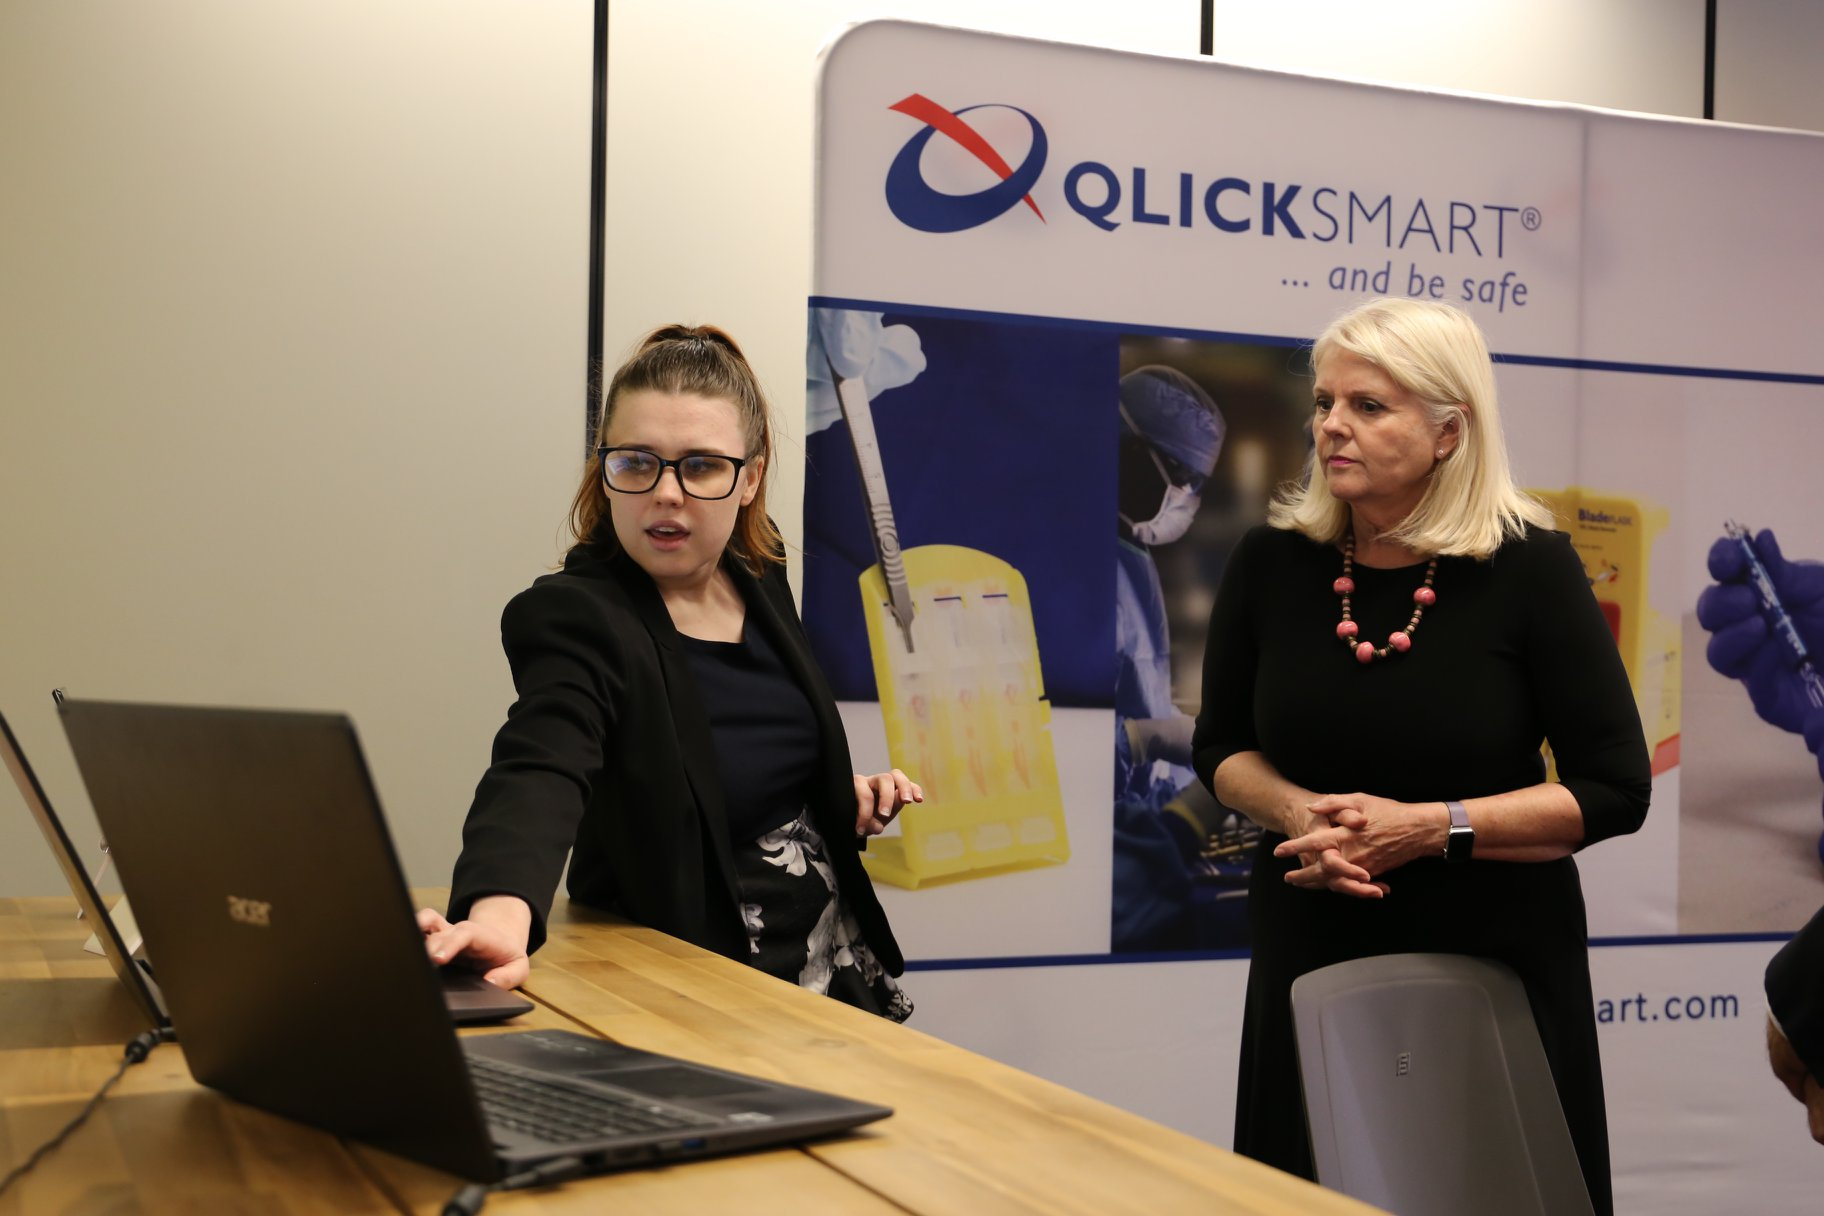 Australian medical safety device manufacturer launches free online platform for frontline healthcare worker safety